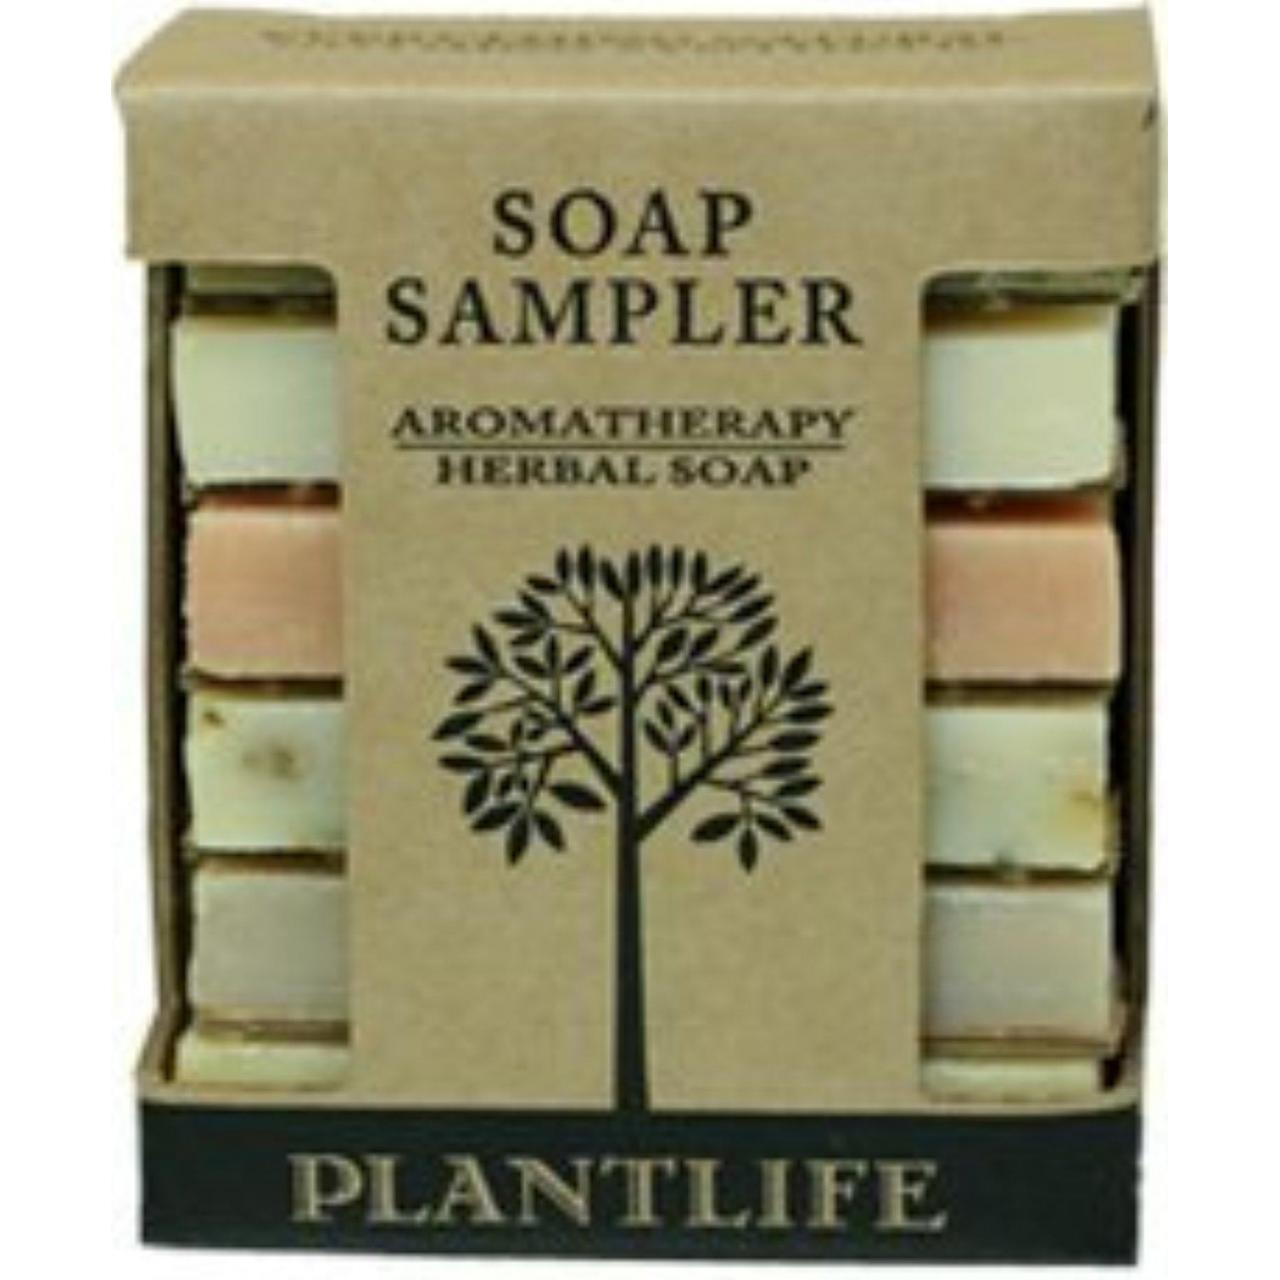 Wholesale Aromatherapy Herbal Soap Sampler (Made with 100% Pure Essentail Oils) by Plantlife from china suppliers